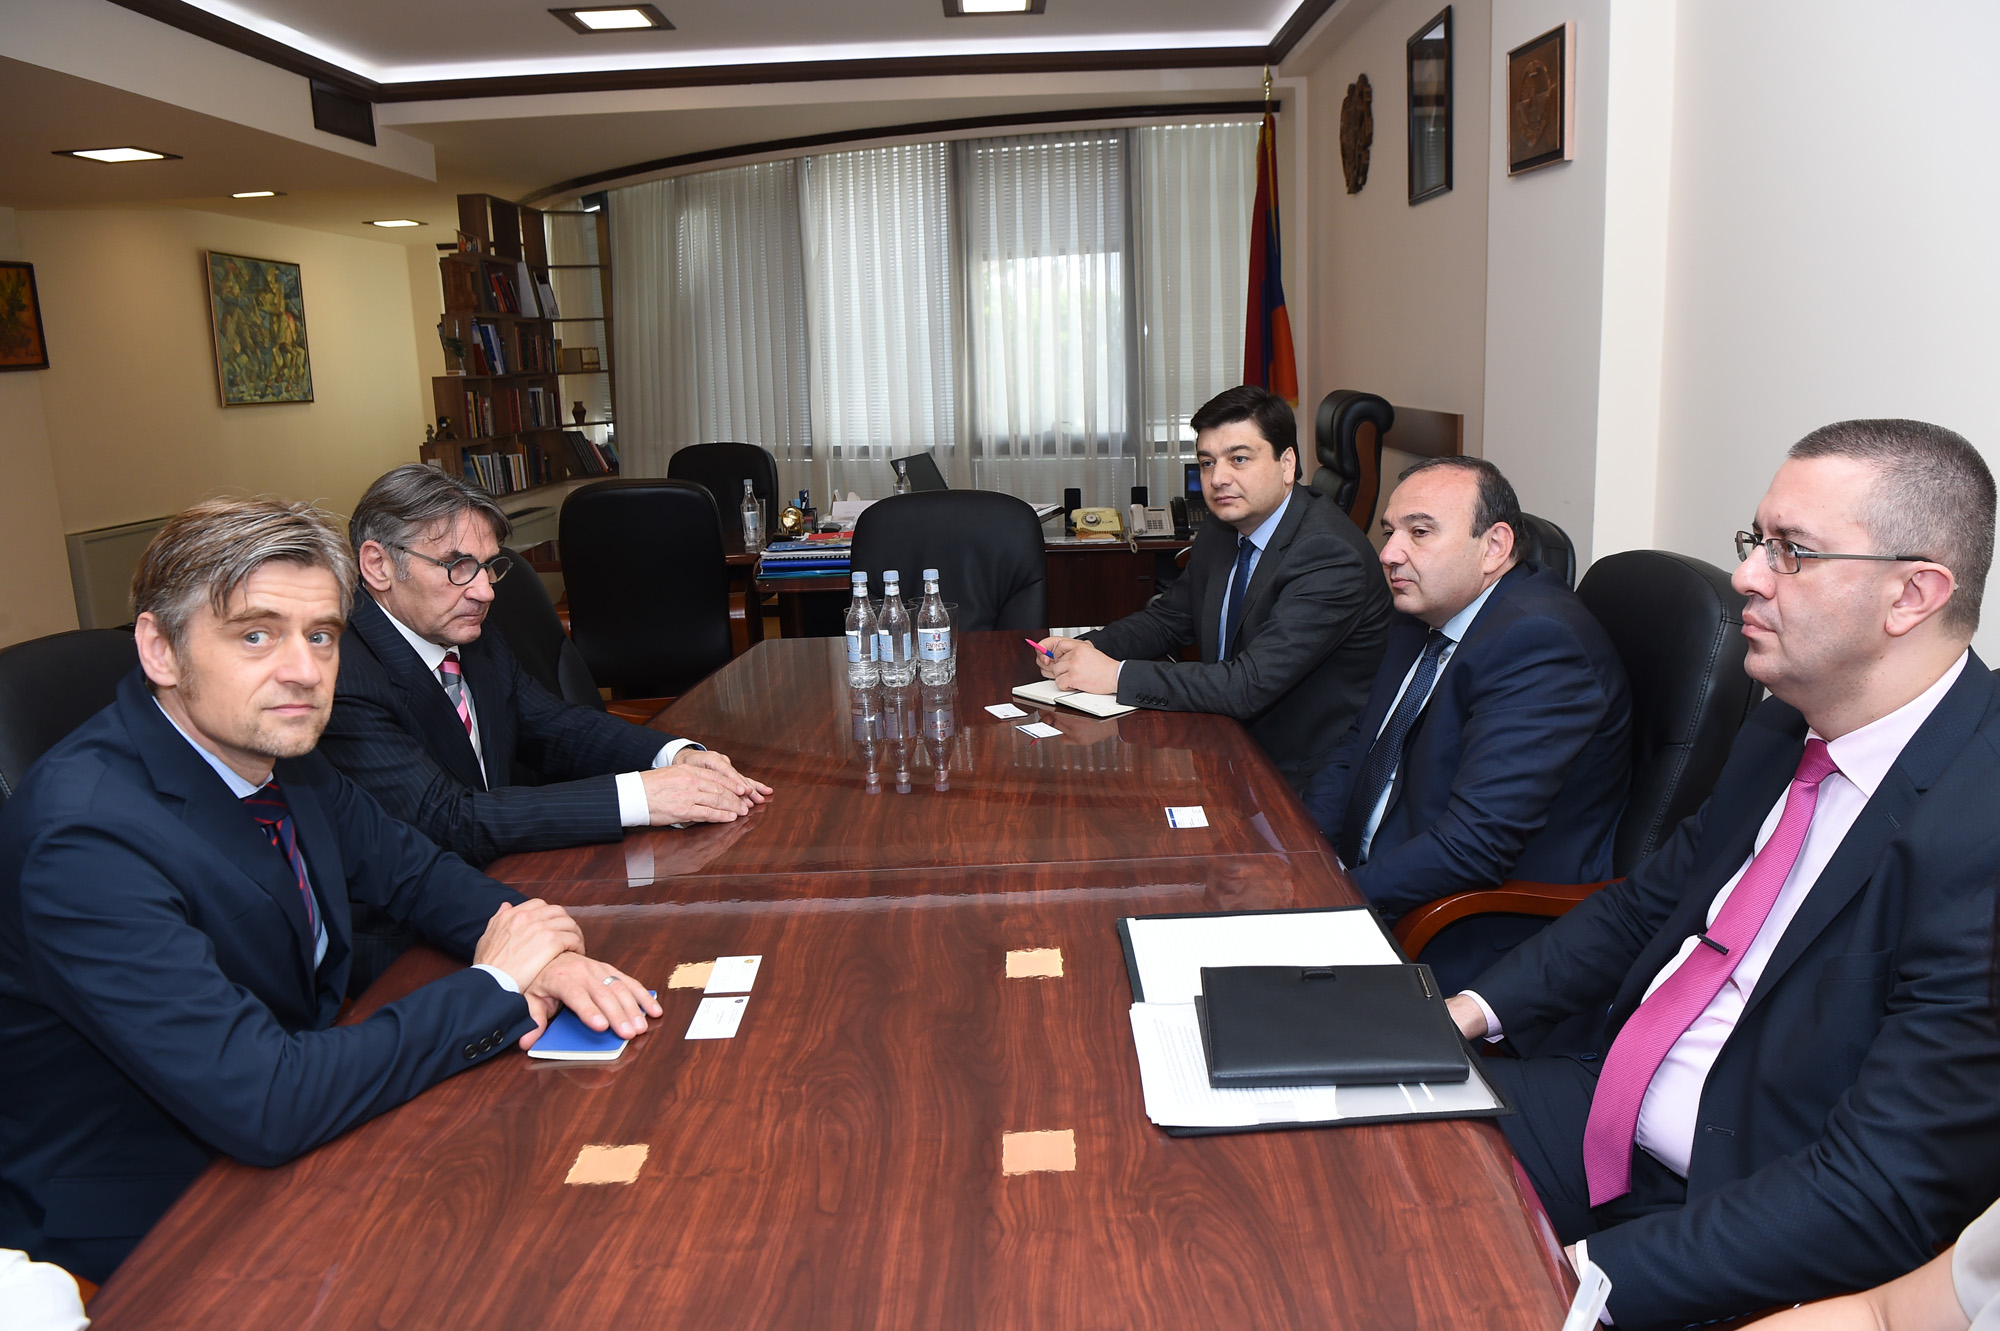 The only way for Armenia's development is fostering democracy, says L. Mkrtchyan